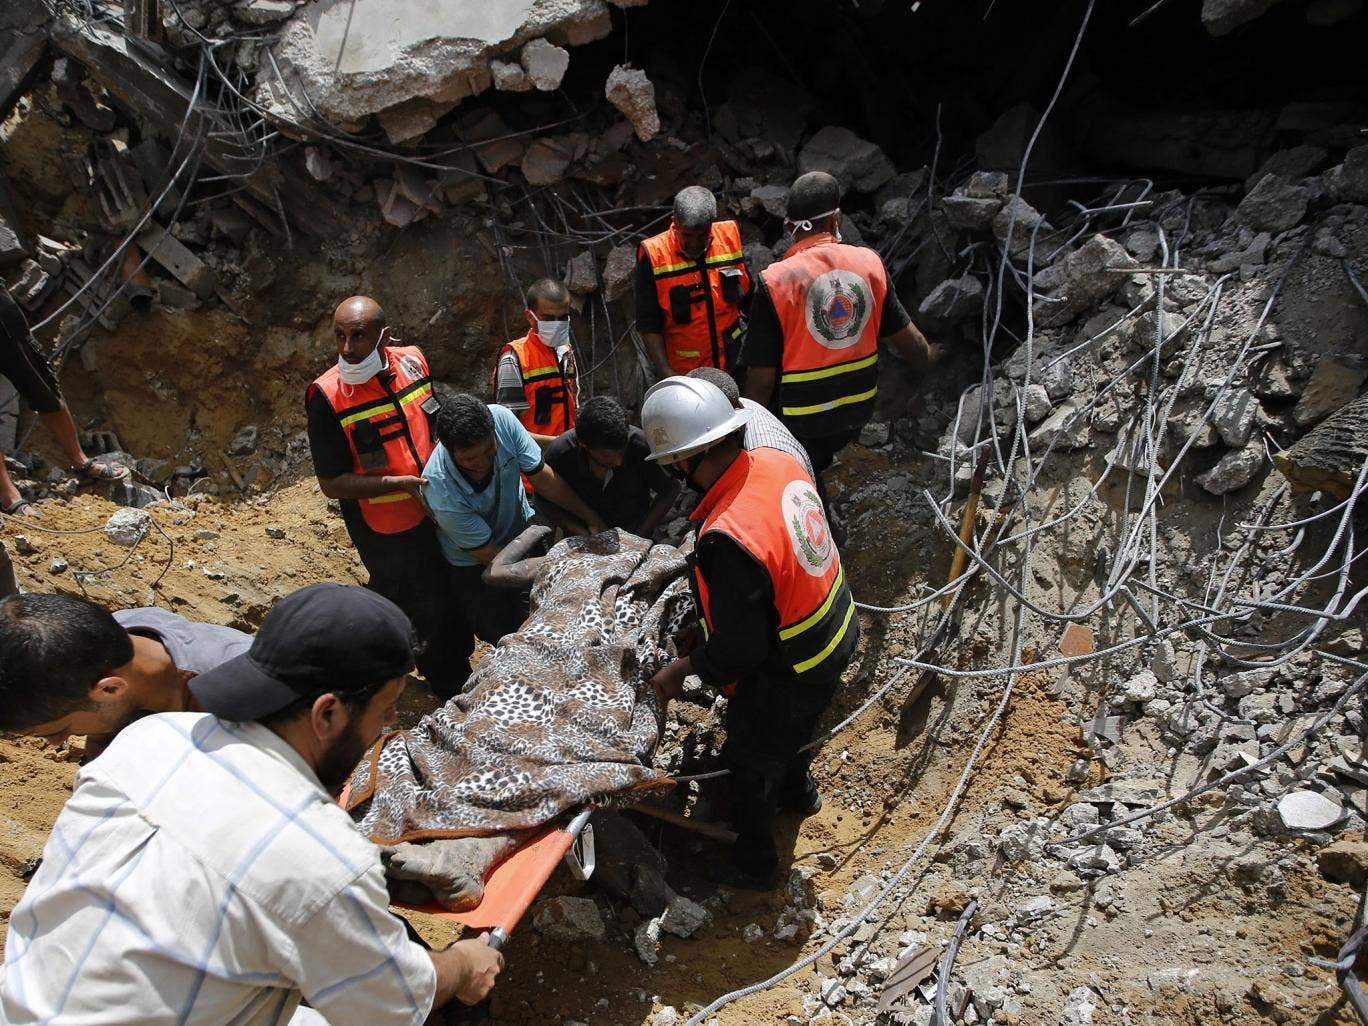 Medics recover a body from a destroyed house in Khan Younis